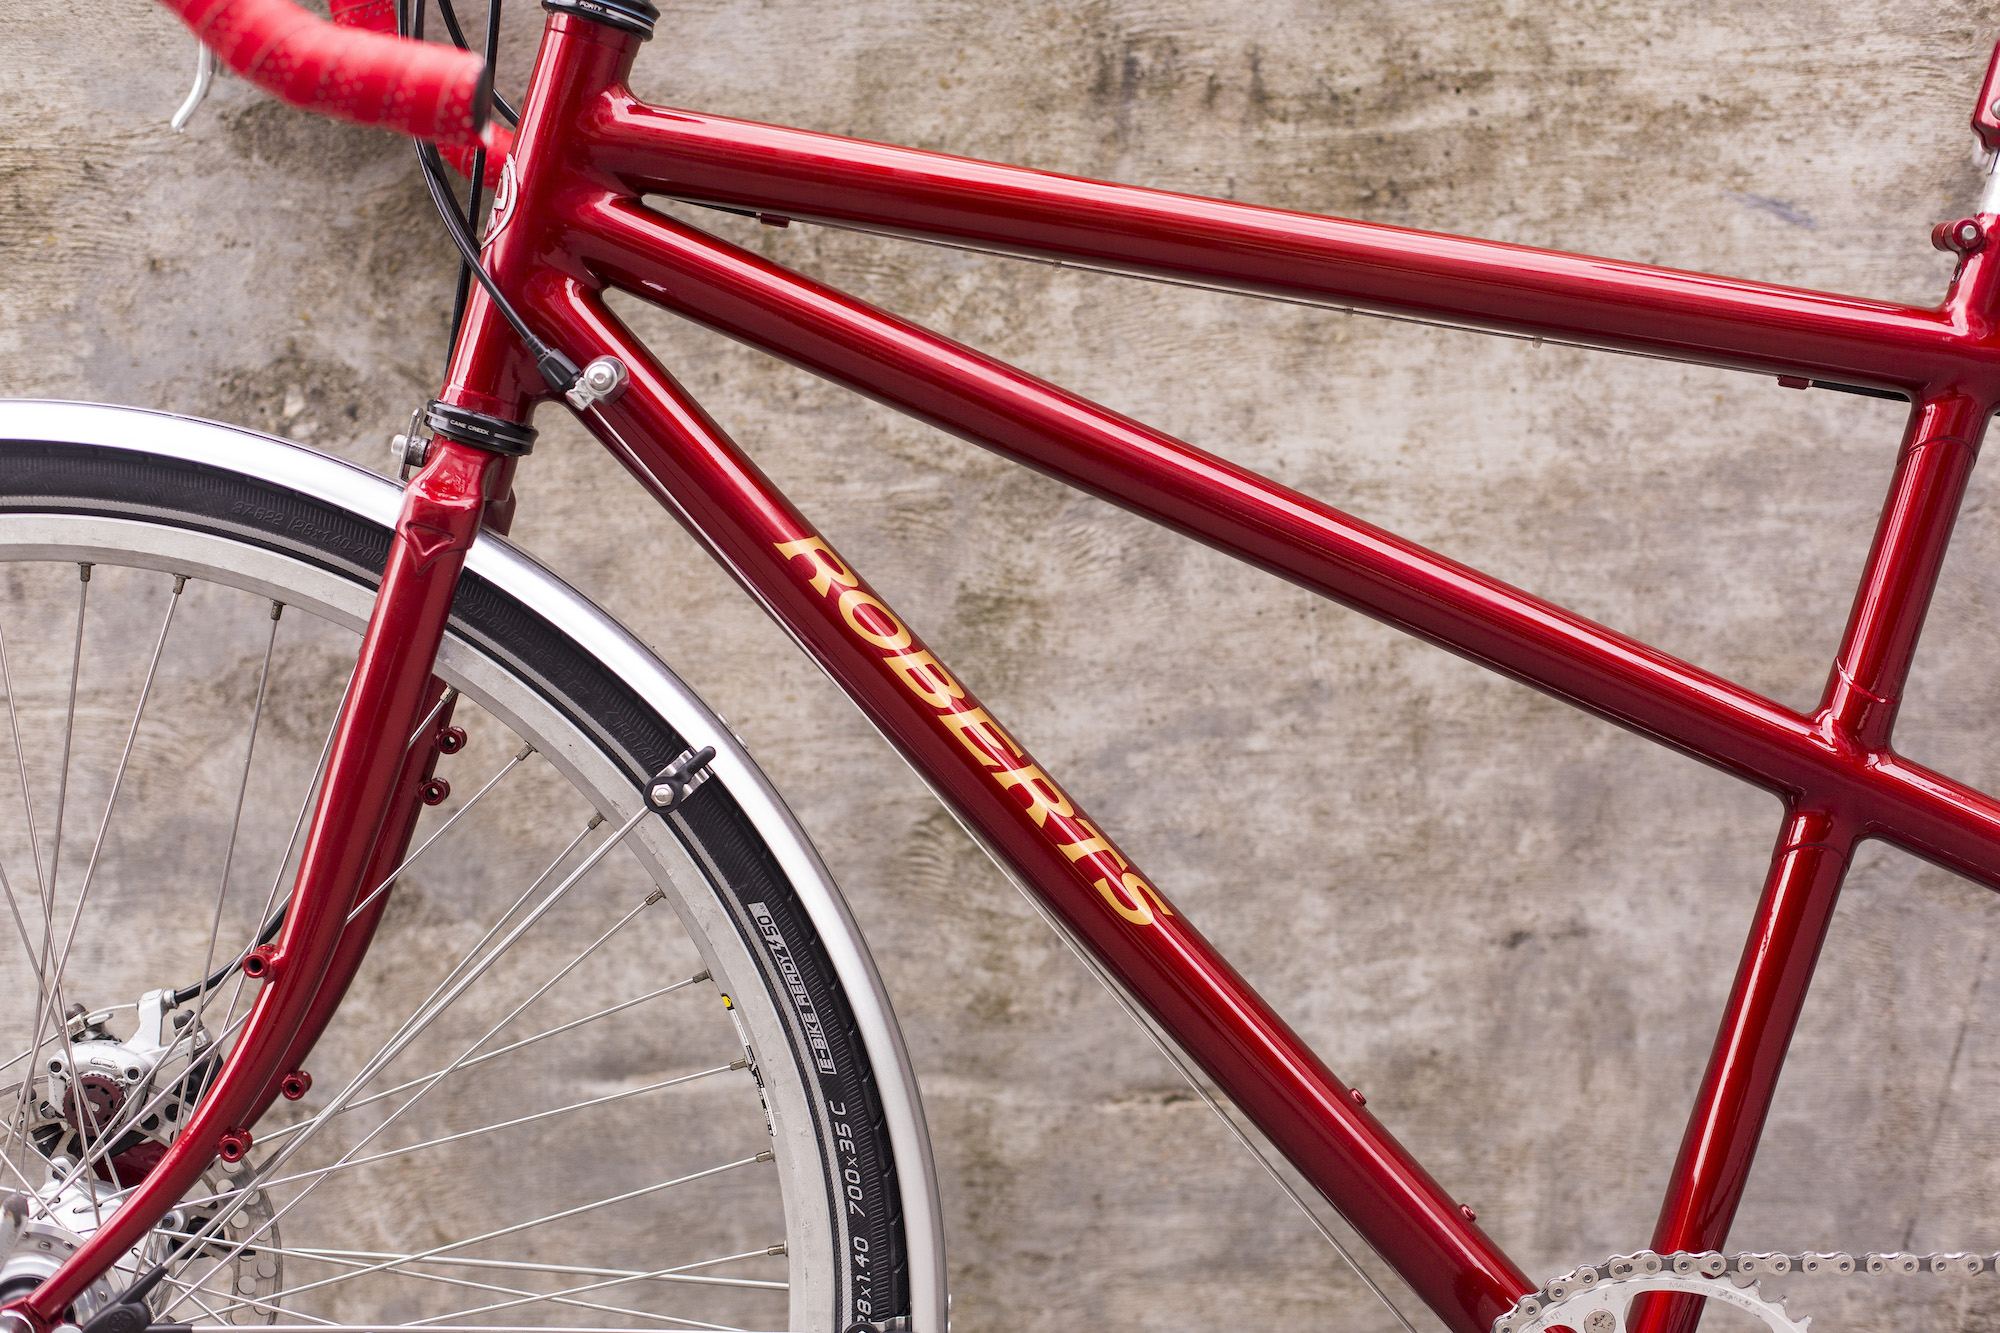 seabass-cycles-bikes-parts-instore-2-april-2019-roberts-tandem-candy-red-4354.jpg